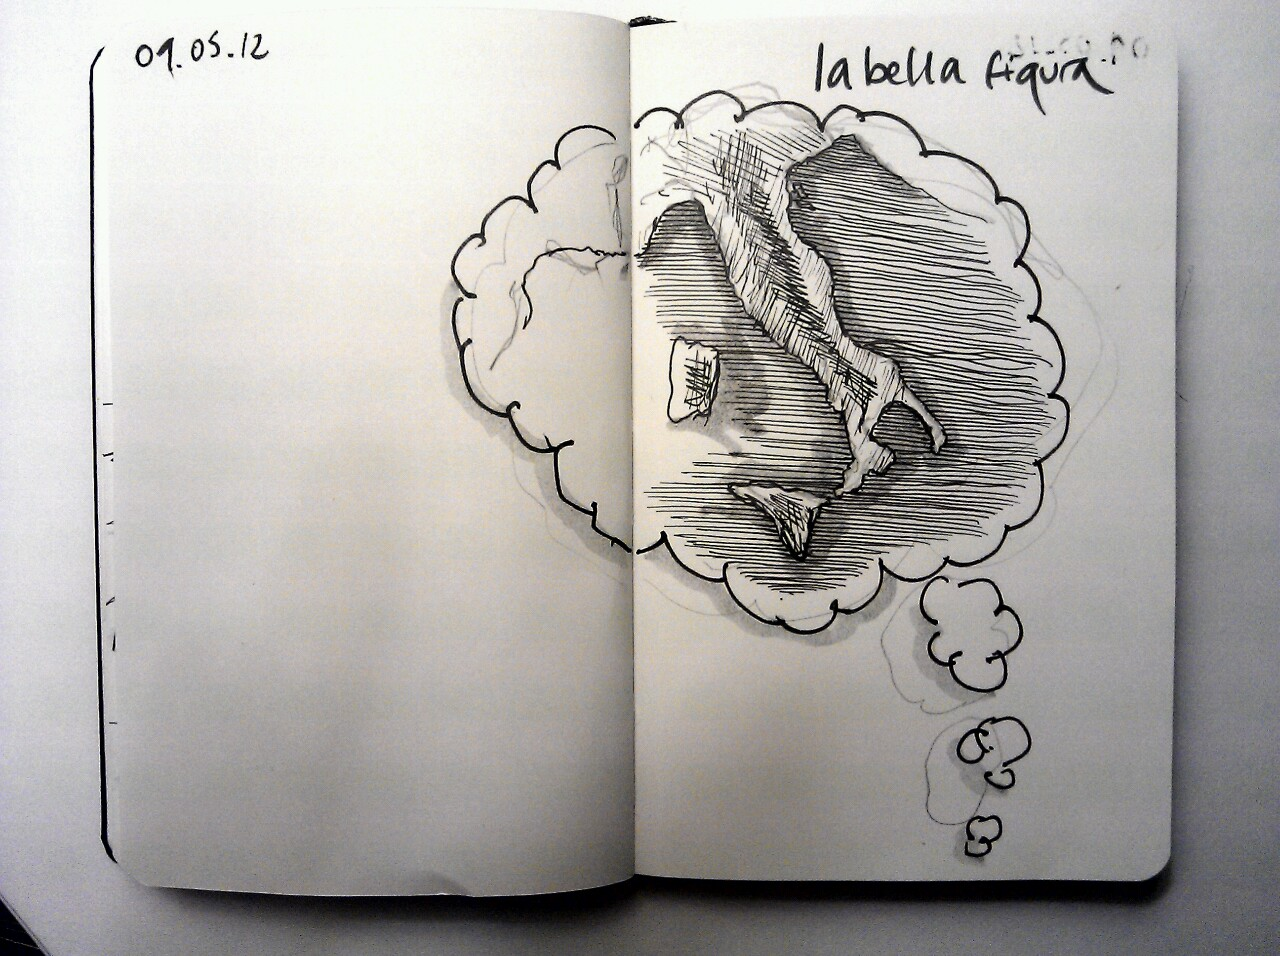 365 drawings later … day 99 … la bella figura (its never far from my thoughts)